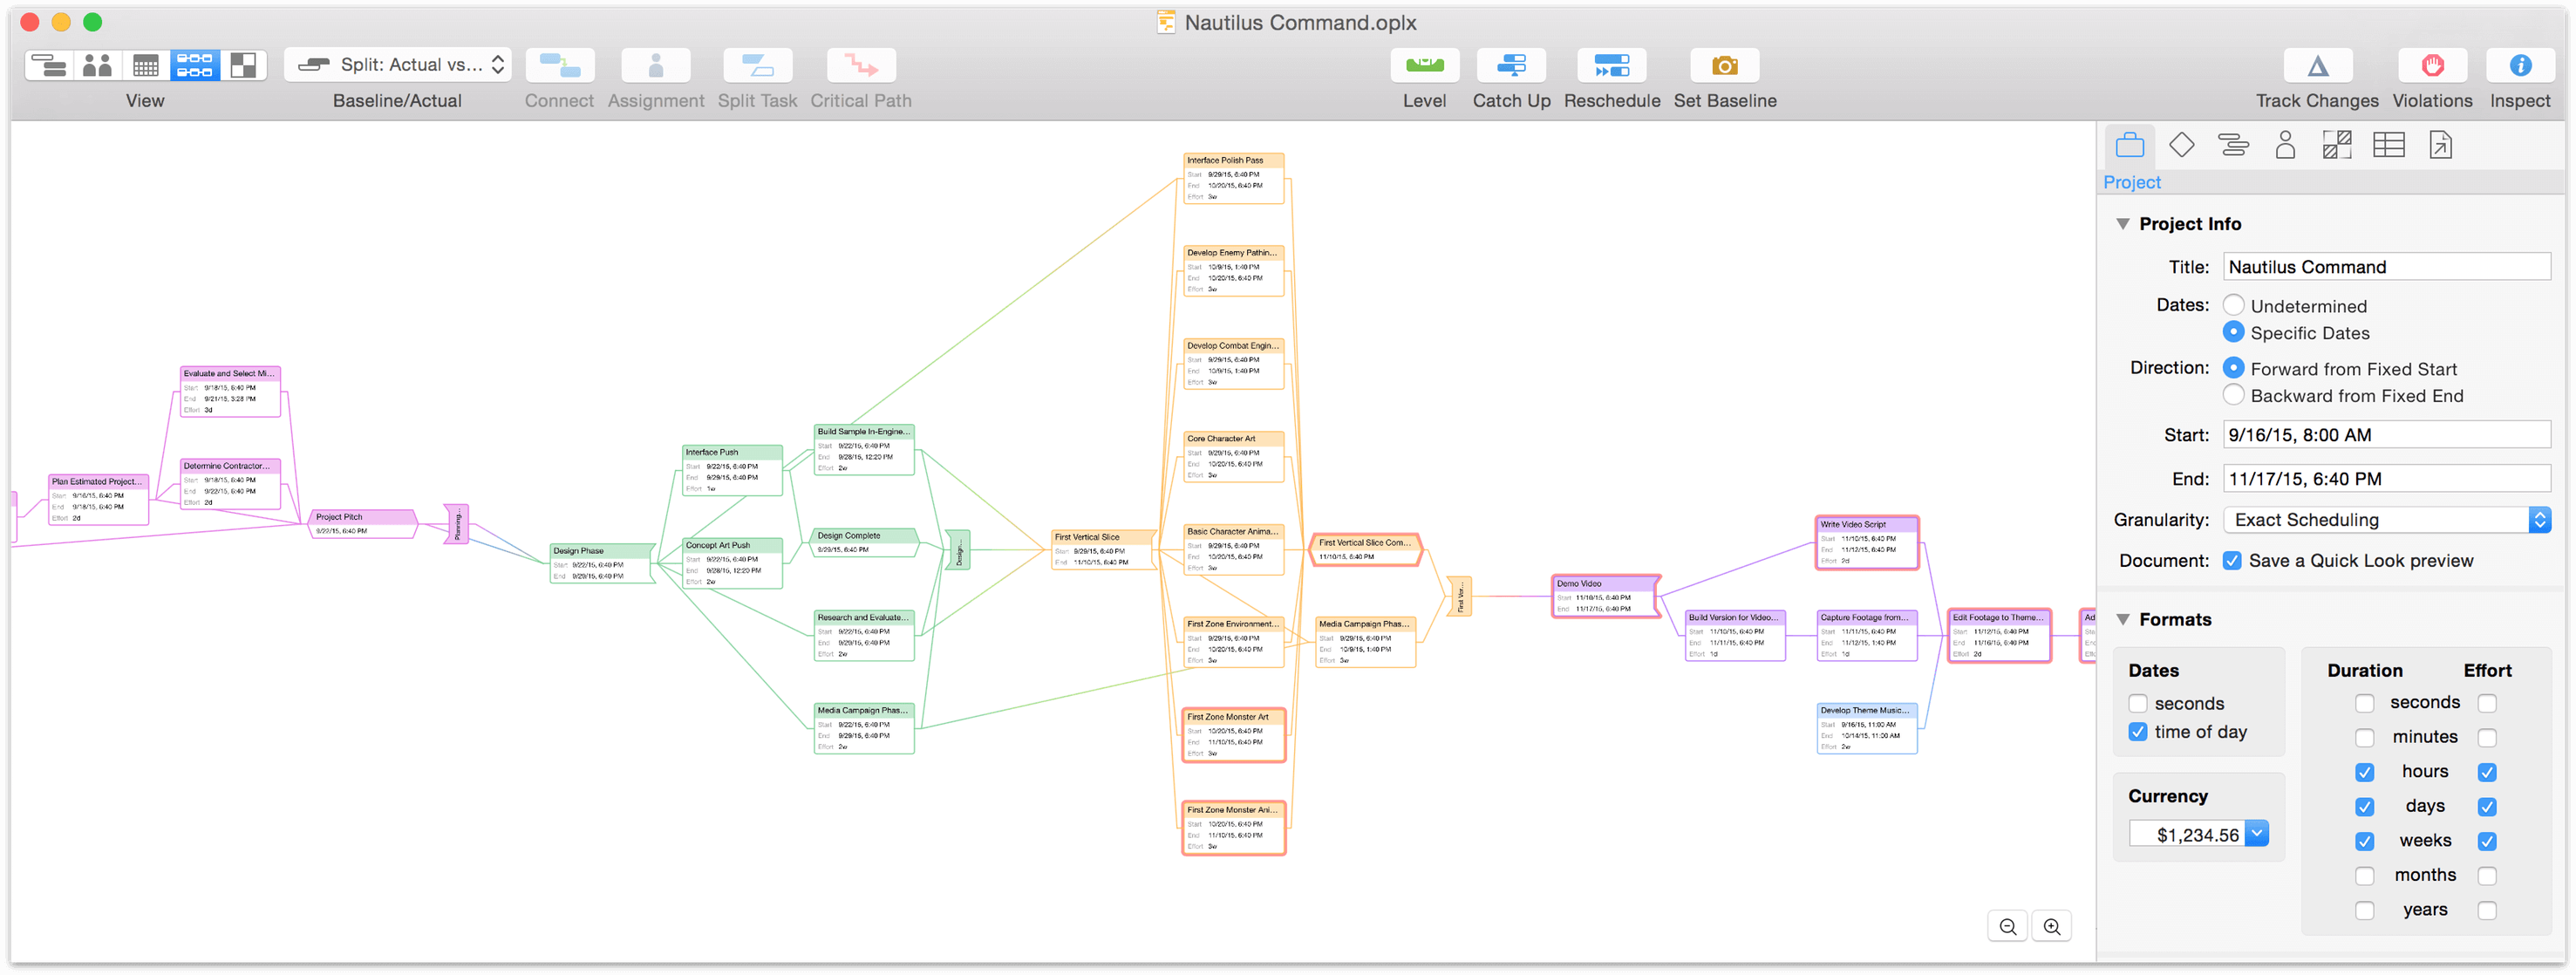 OmniPlan 3.6 for Mac User Manual - Working in Network View